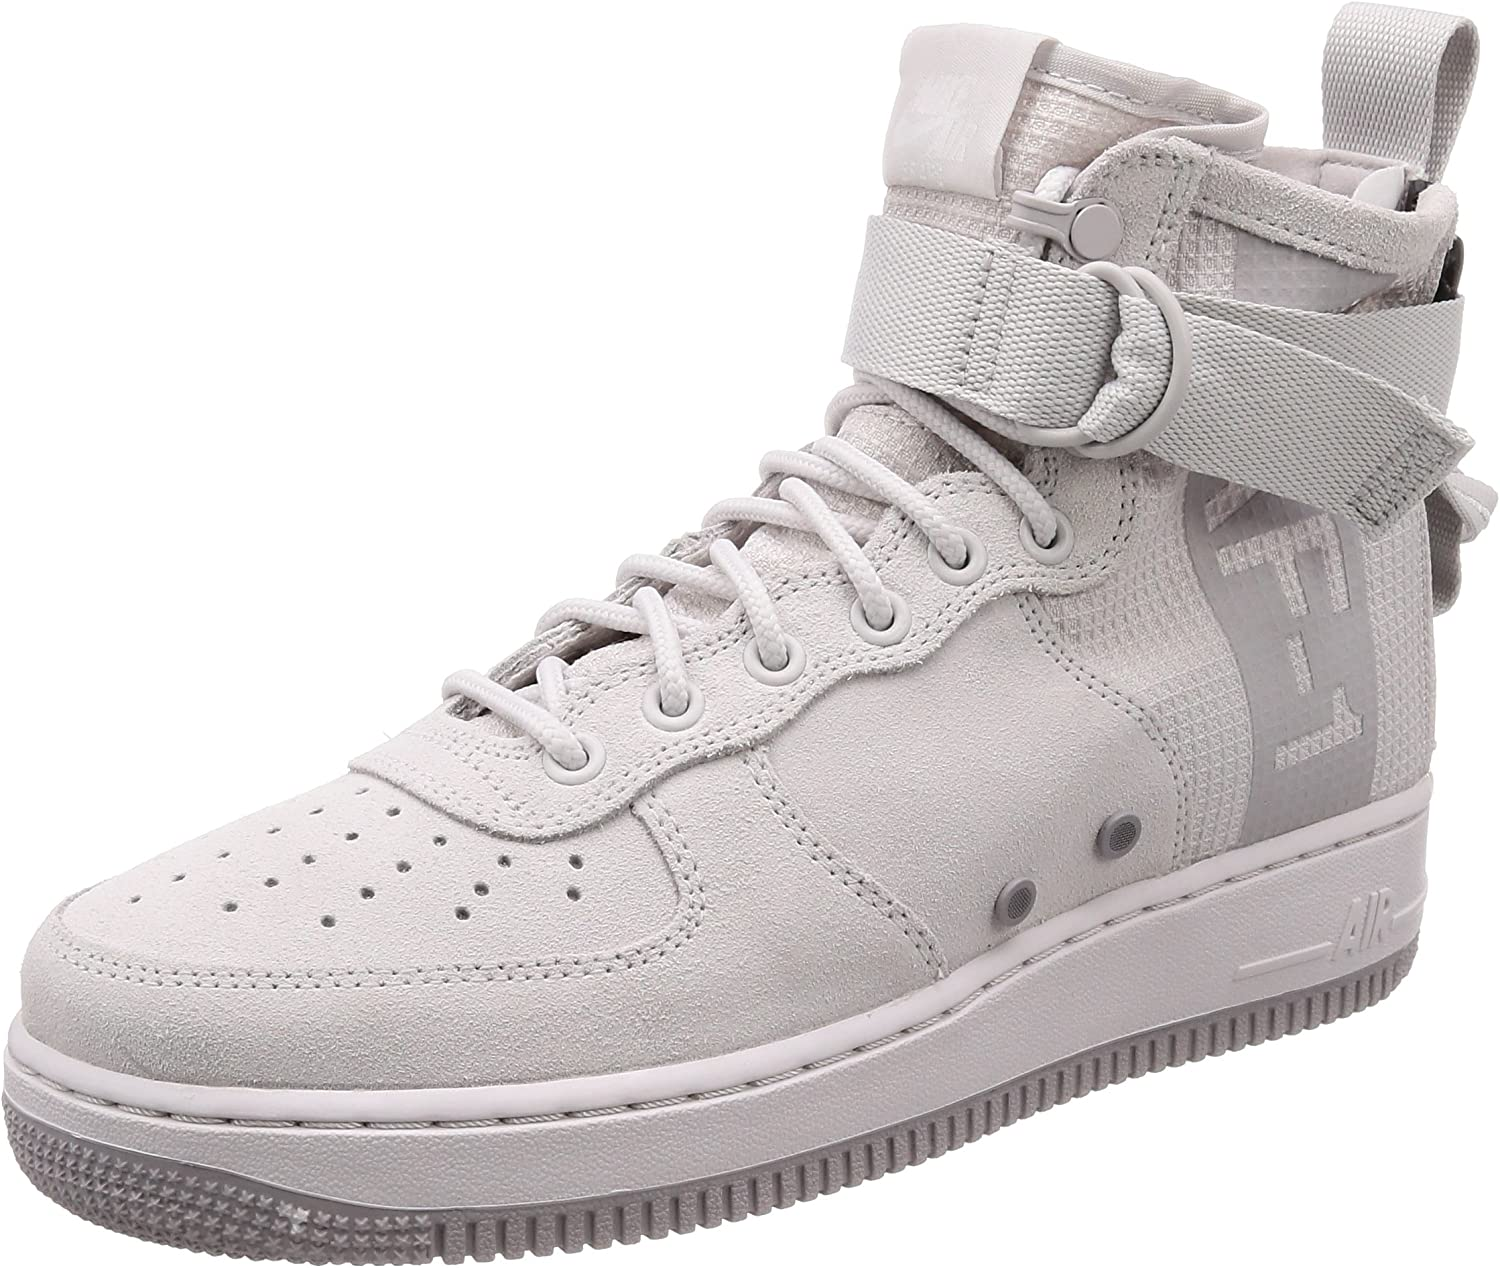 Nike Mens SF Air Force 1 Mid Suede Premium shoes